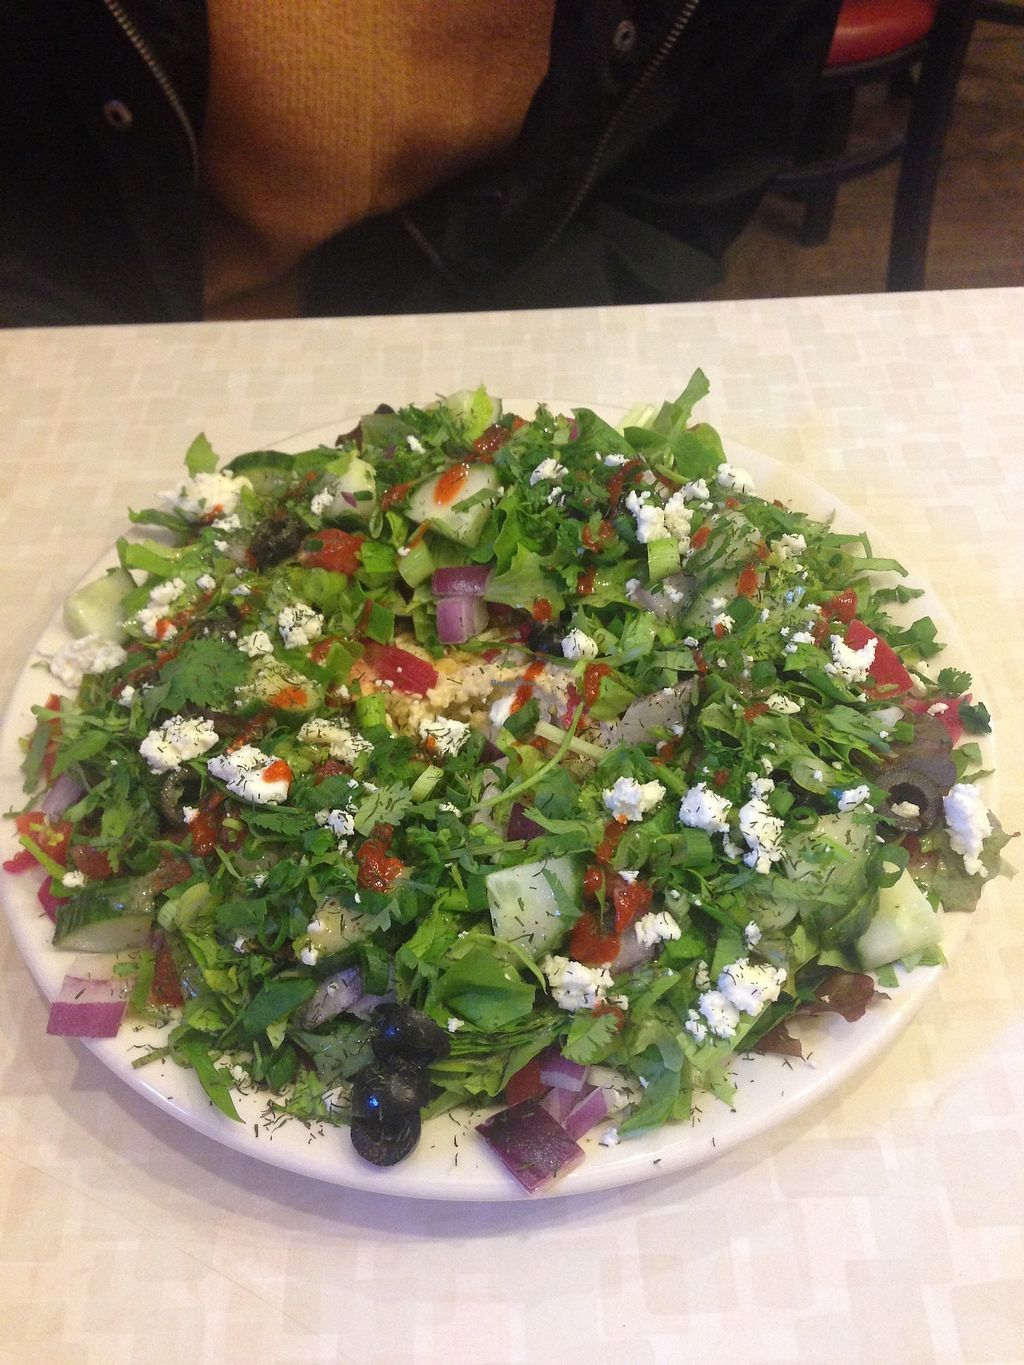 """Photo of Red Cup Coffee House  by <a href=""""/members/profile/MollyJD17"""">MollyJD17</a> <br/>Mediterranean Salad <br/> December 29, 2017  - <a href='/contact/abuse/image/11038/340295'>Report</a>"""